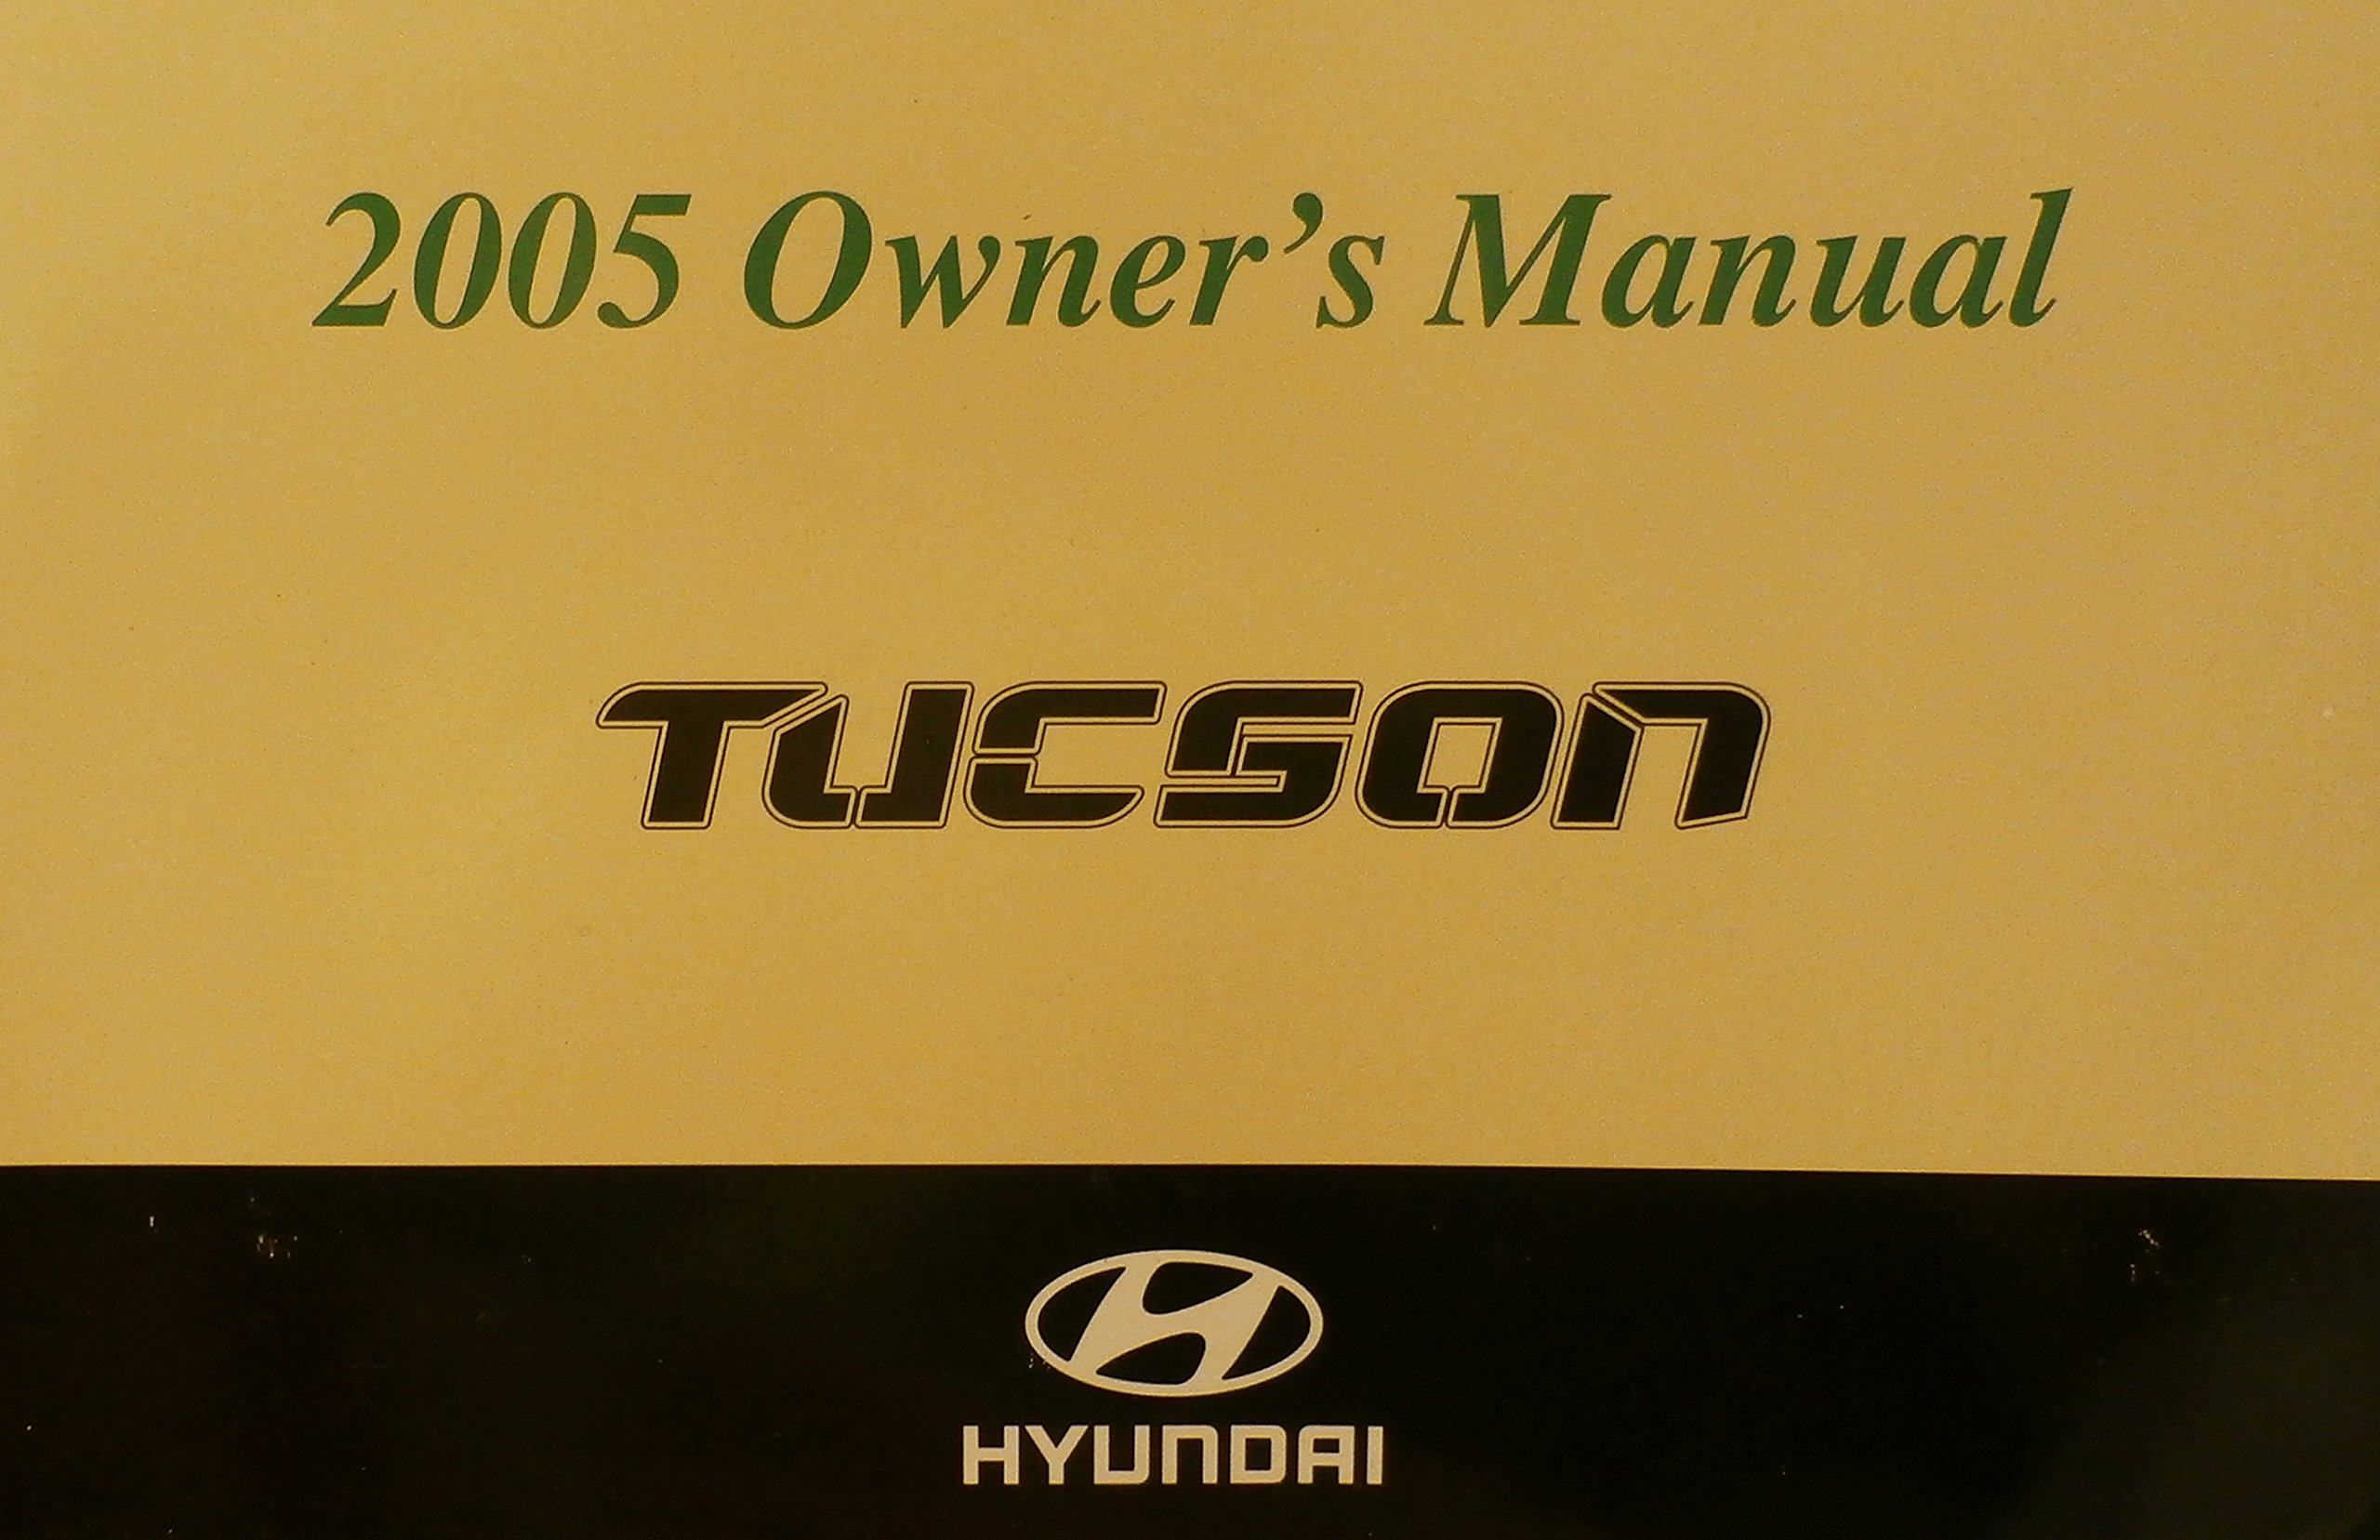 2005 Hyundai Tucson Owners Manual: Hyundai: Amazon com: Books